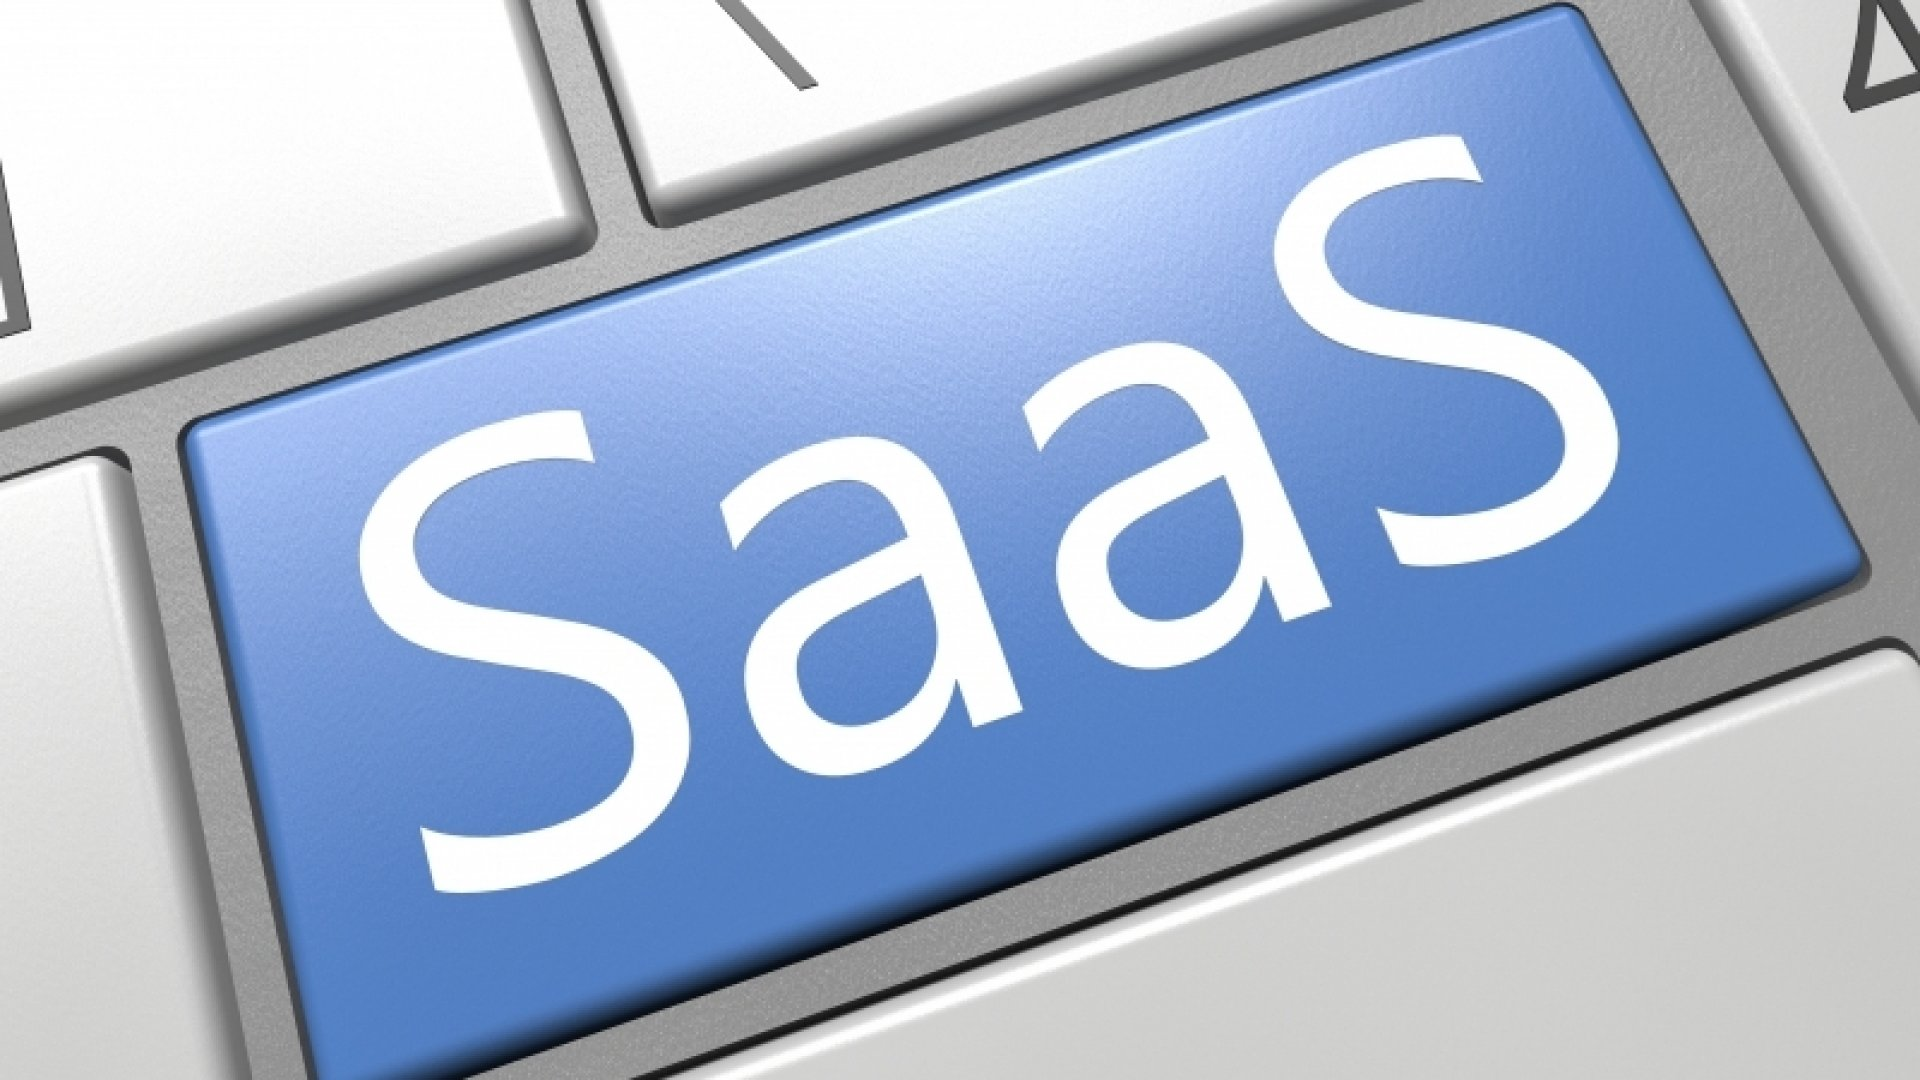 Four Business Functions You Should Not Saas Inc Com